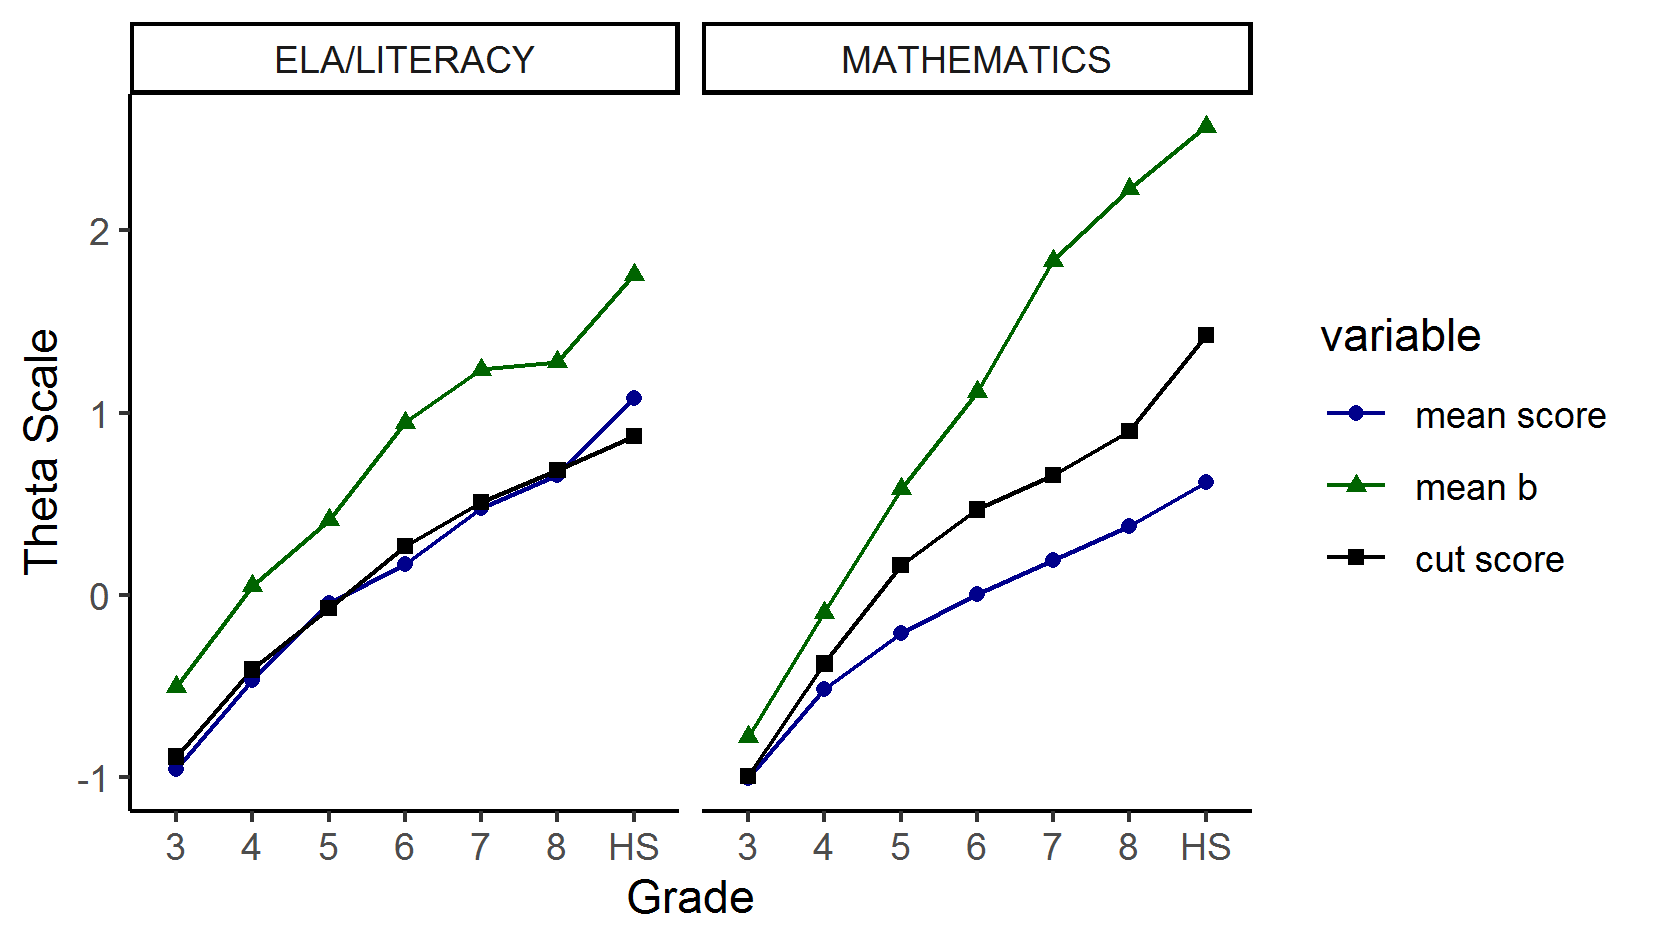 Comparison of Item Difficulty, Mean, Student Scores, Cut Scores for ELA/Literacy and Mathematics